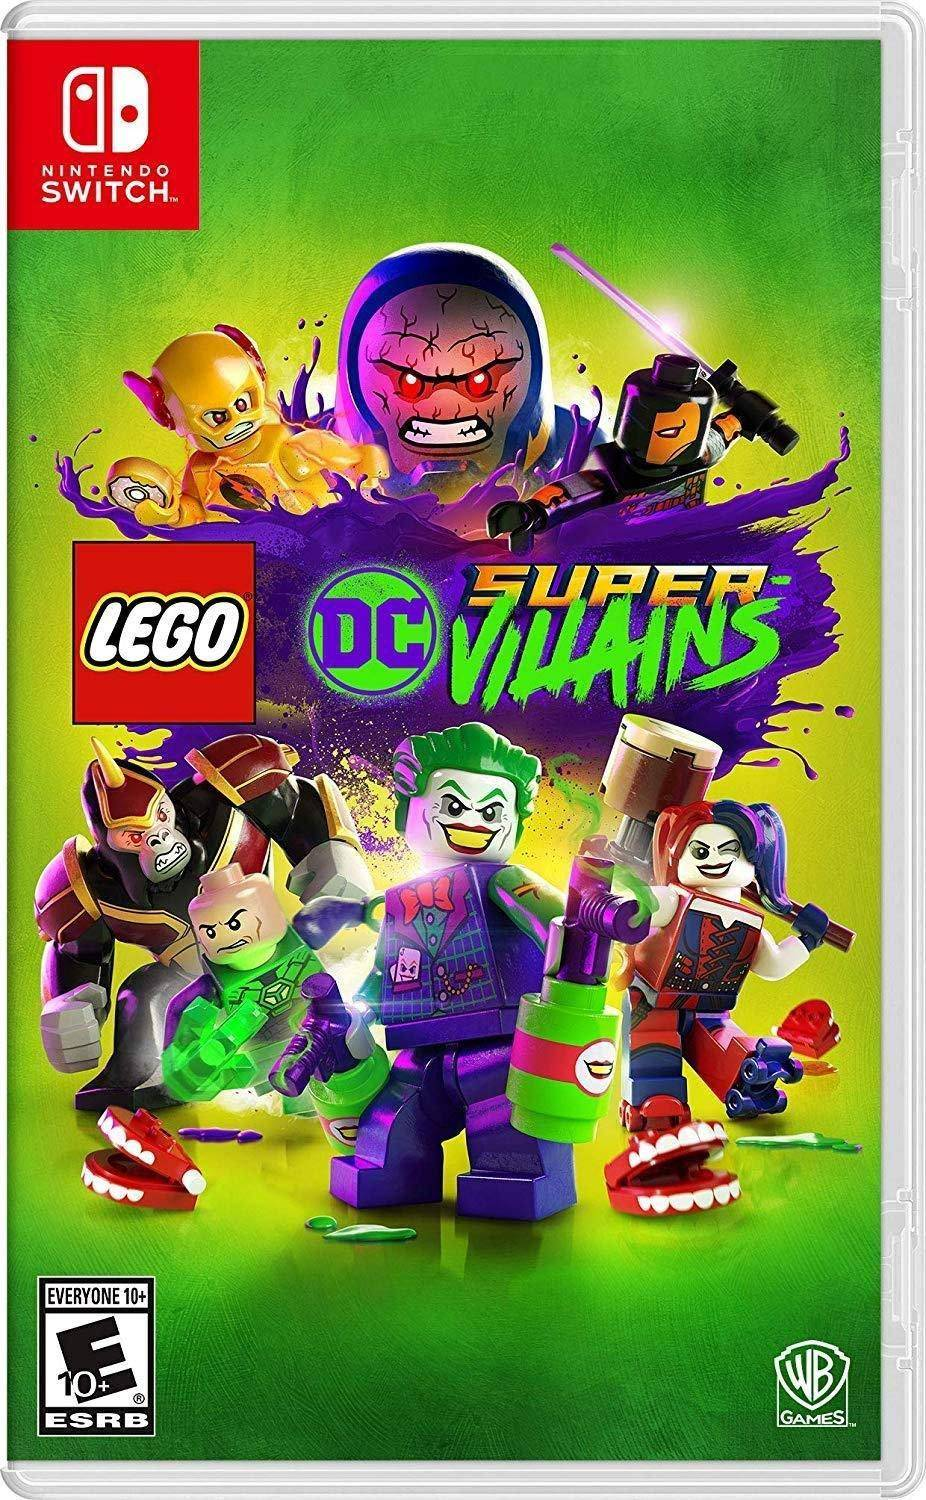 1. LEGO DC Super-Villains - Nintendo Switch